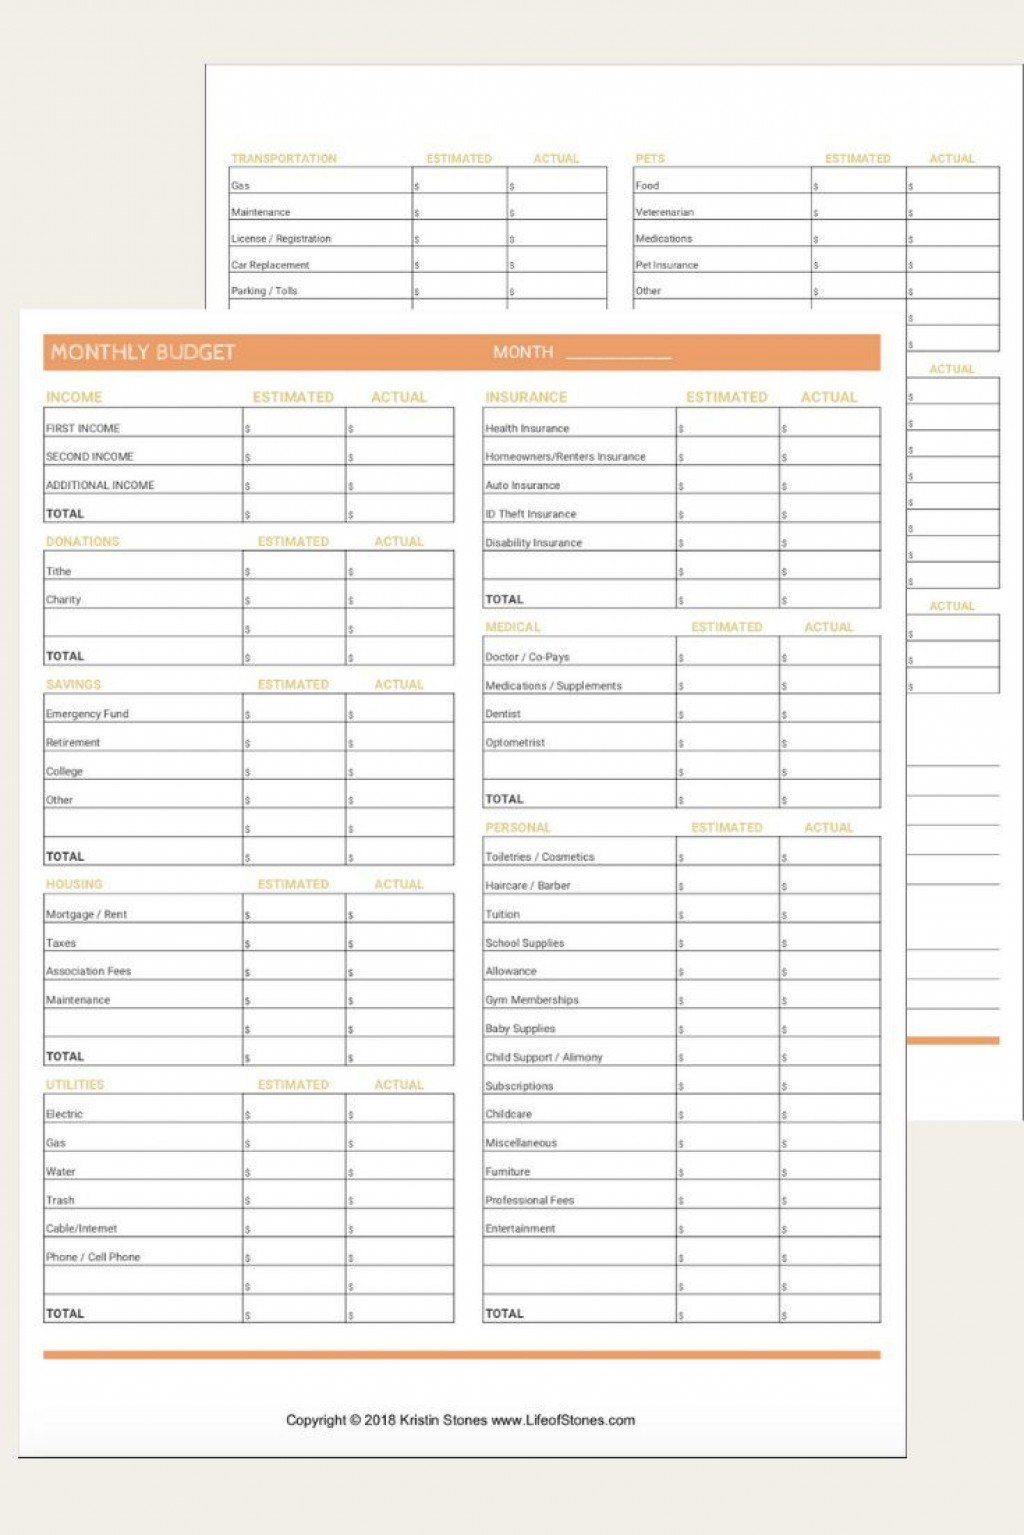 006 Fascinating Free Blank Monthly Budget Template High Definition  Editable Downloadable PrintableLarge